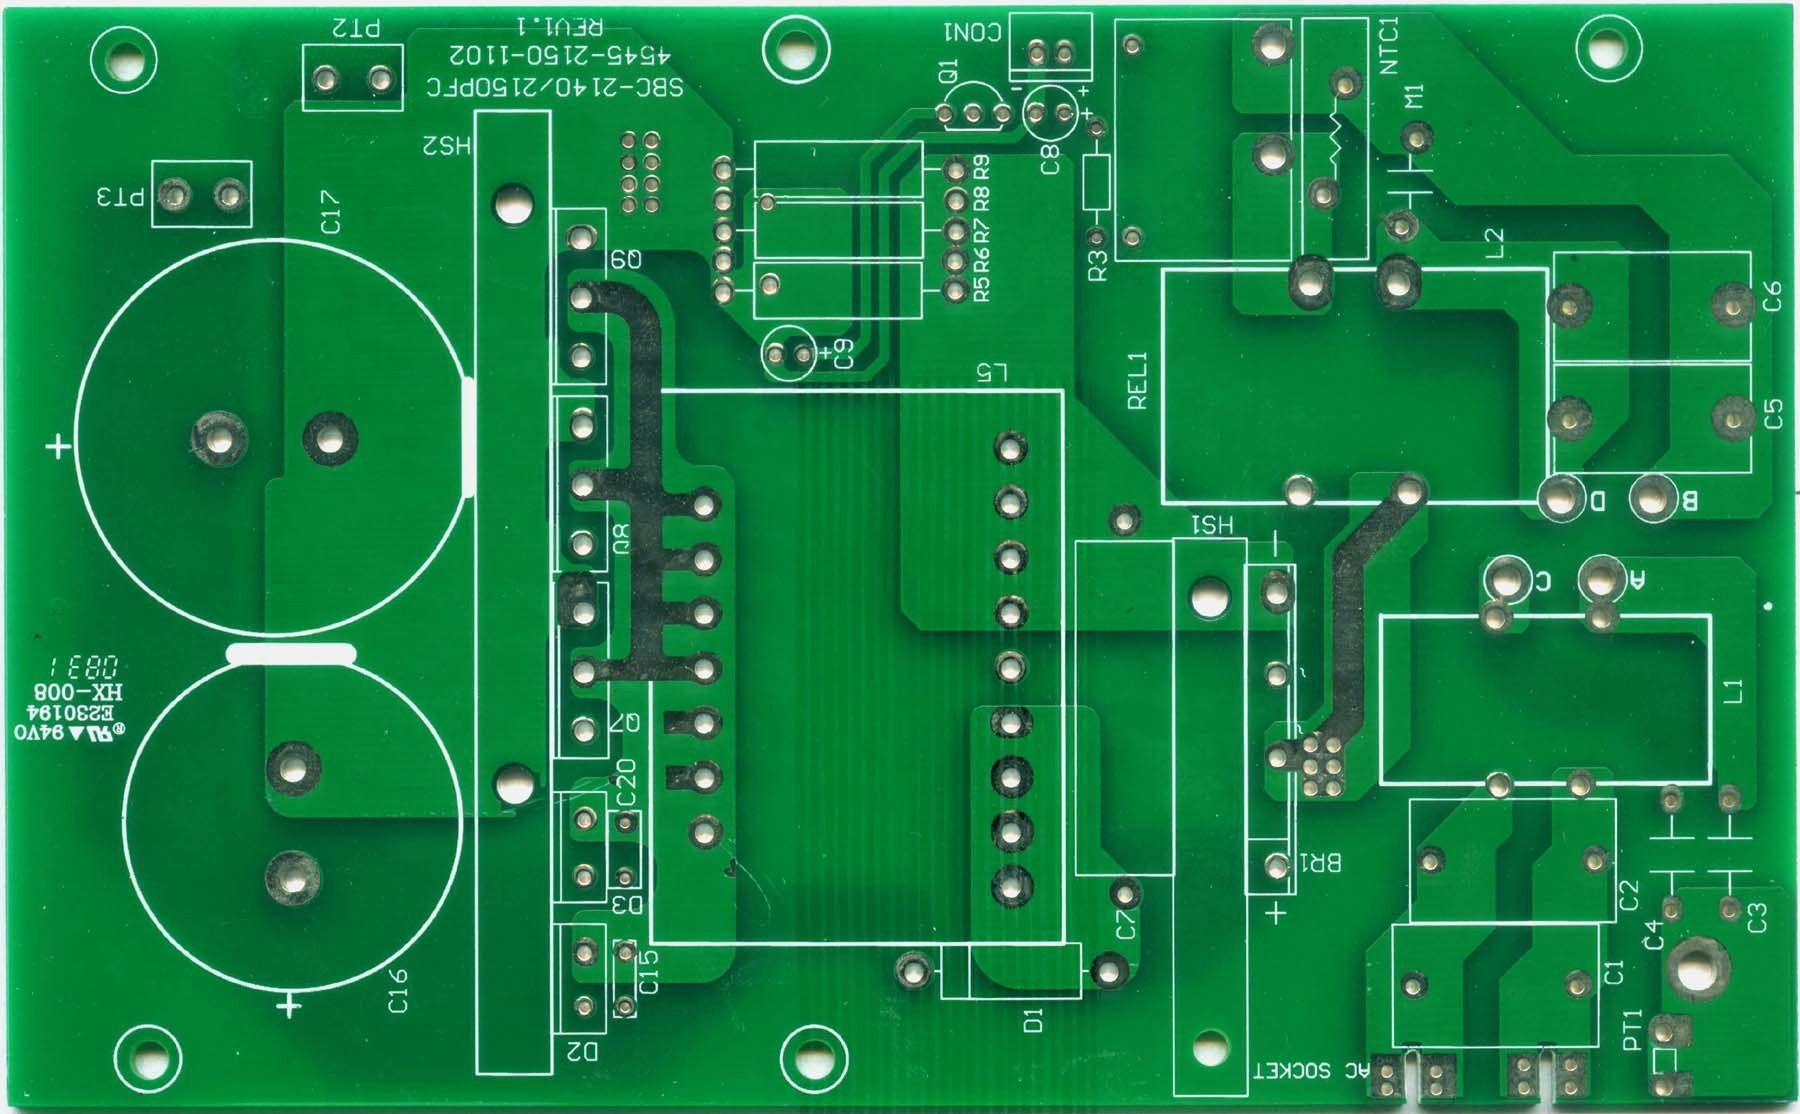 Fr4 Pcb Board Printed Circuit T Boardsled Boardled Buy Led Light Different Types Of Boards Green Soldermask On Top And Bottom